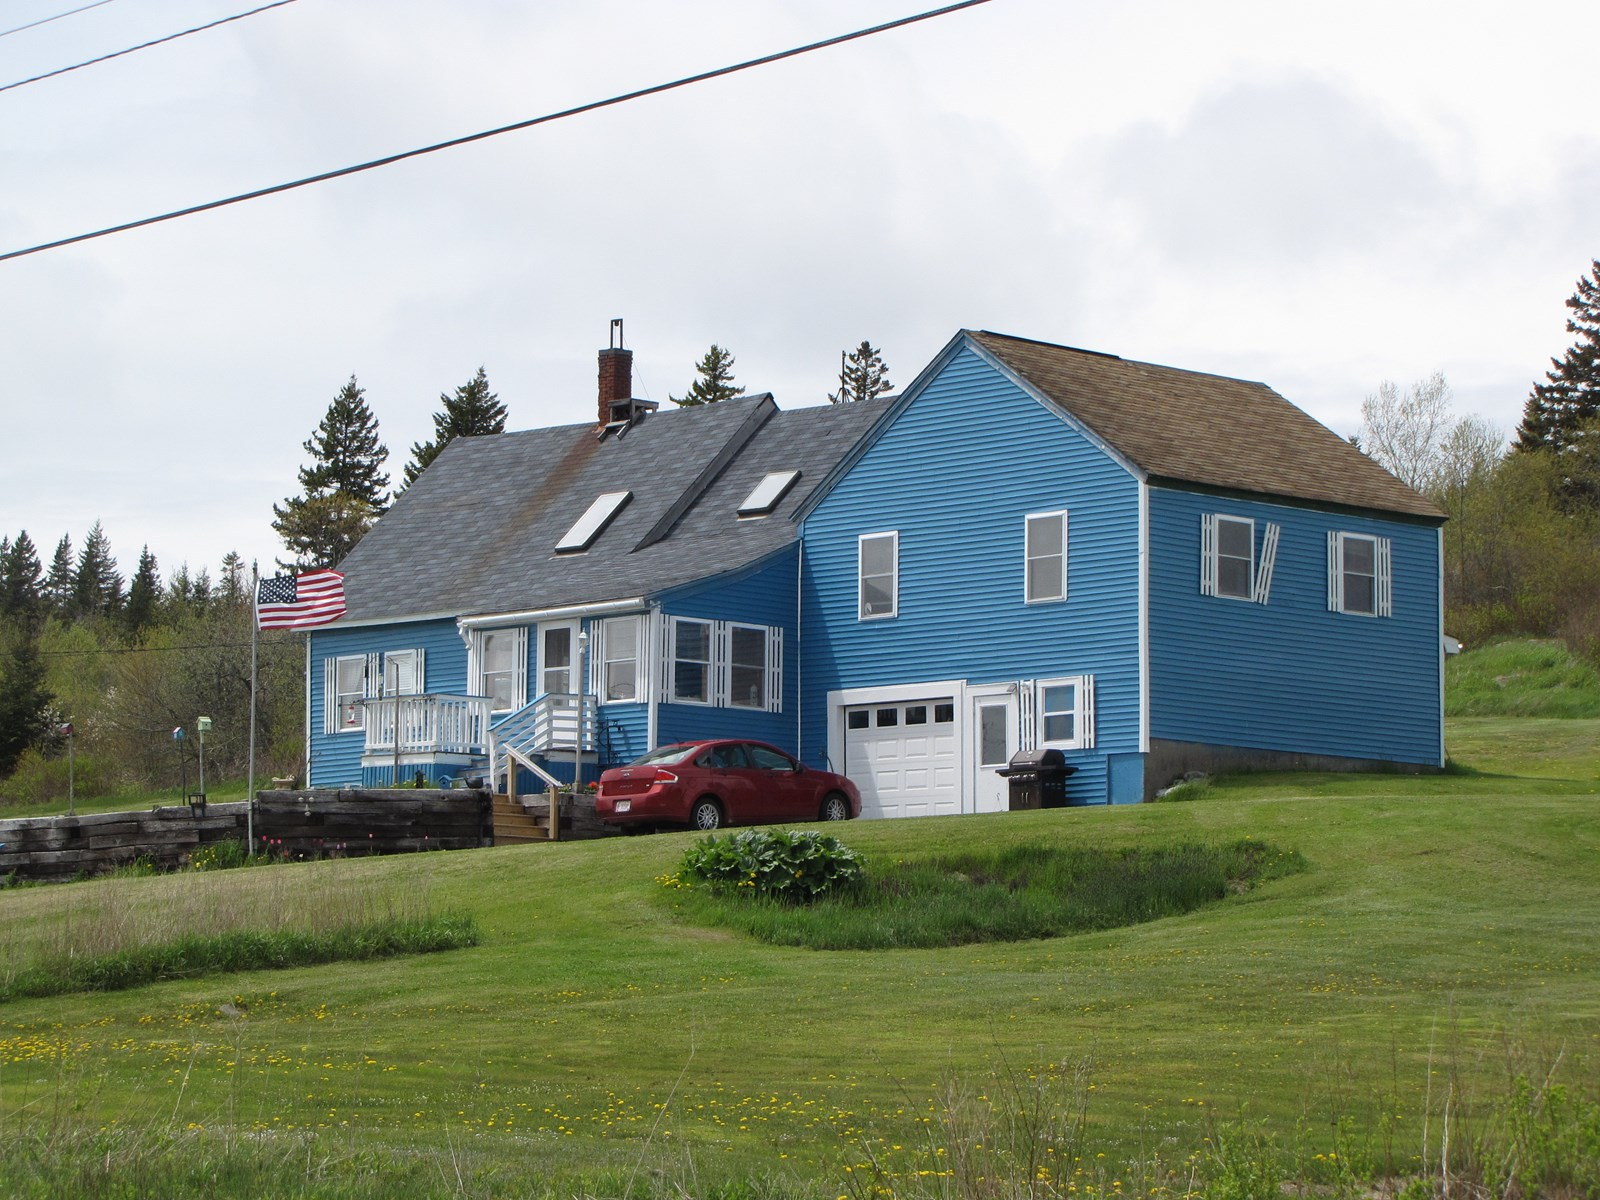 New England Farmhouse for Sale in Cutler, Maine